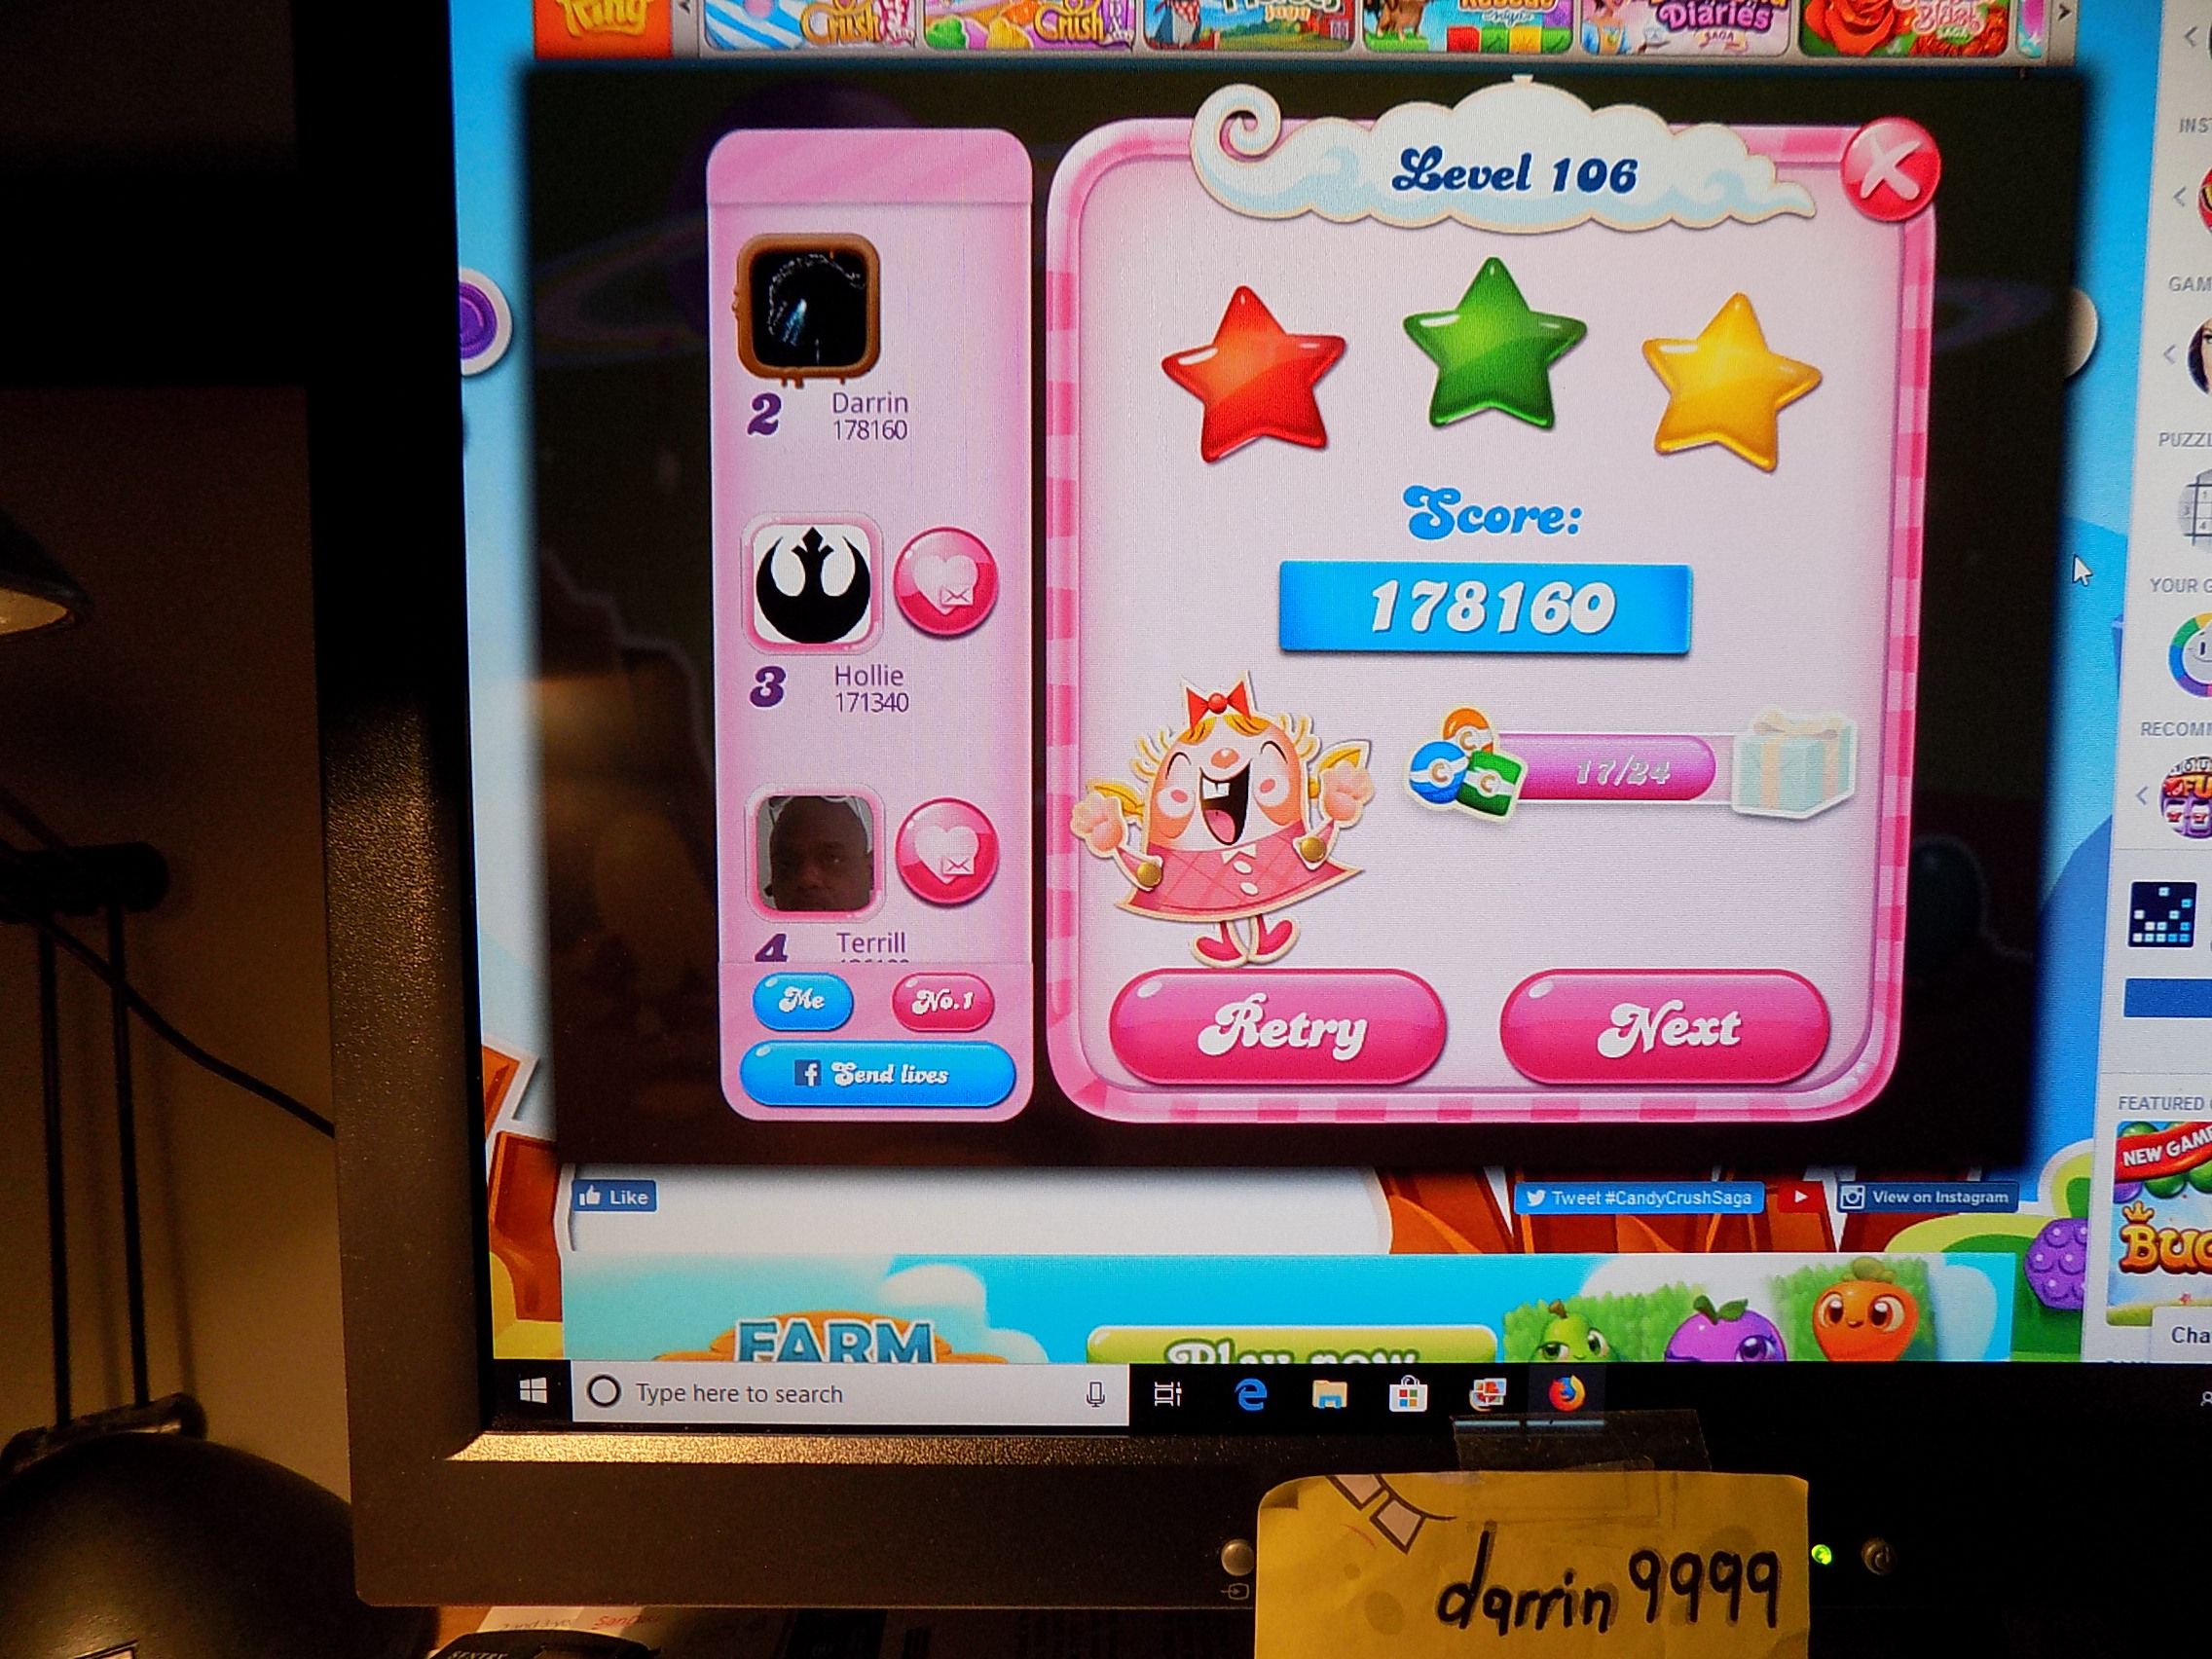 darrin9999: Candy Crush Saga: Level 106 (Web) 178,160 points on 2019-07-15 07:49:04